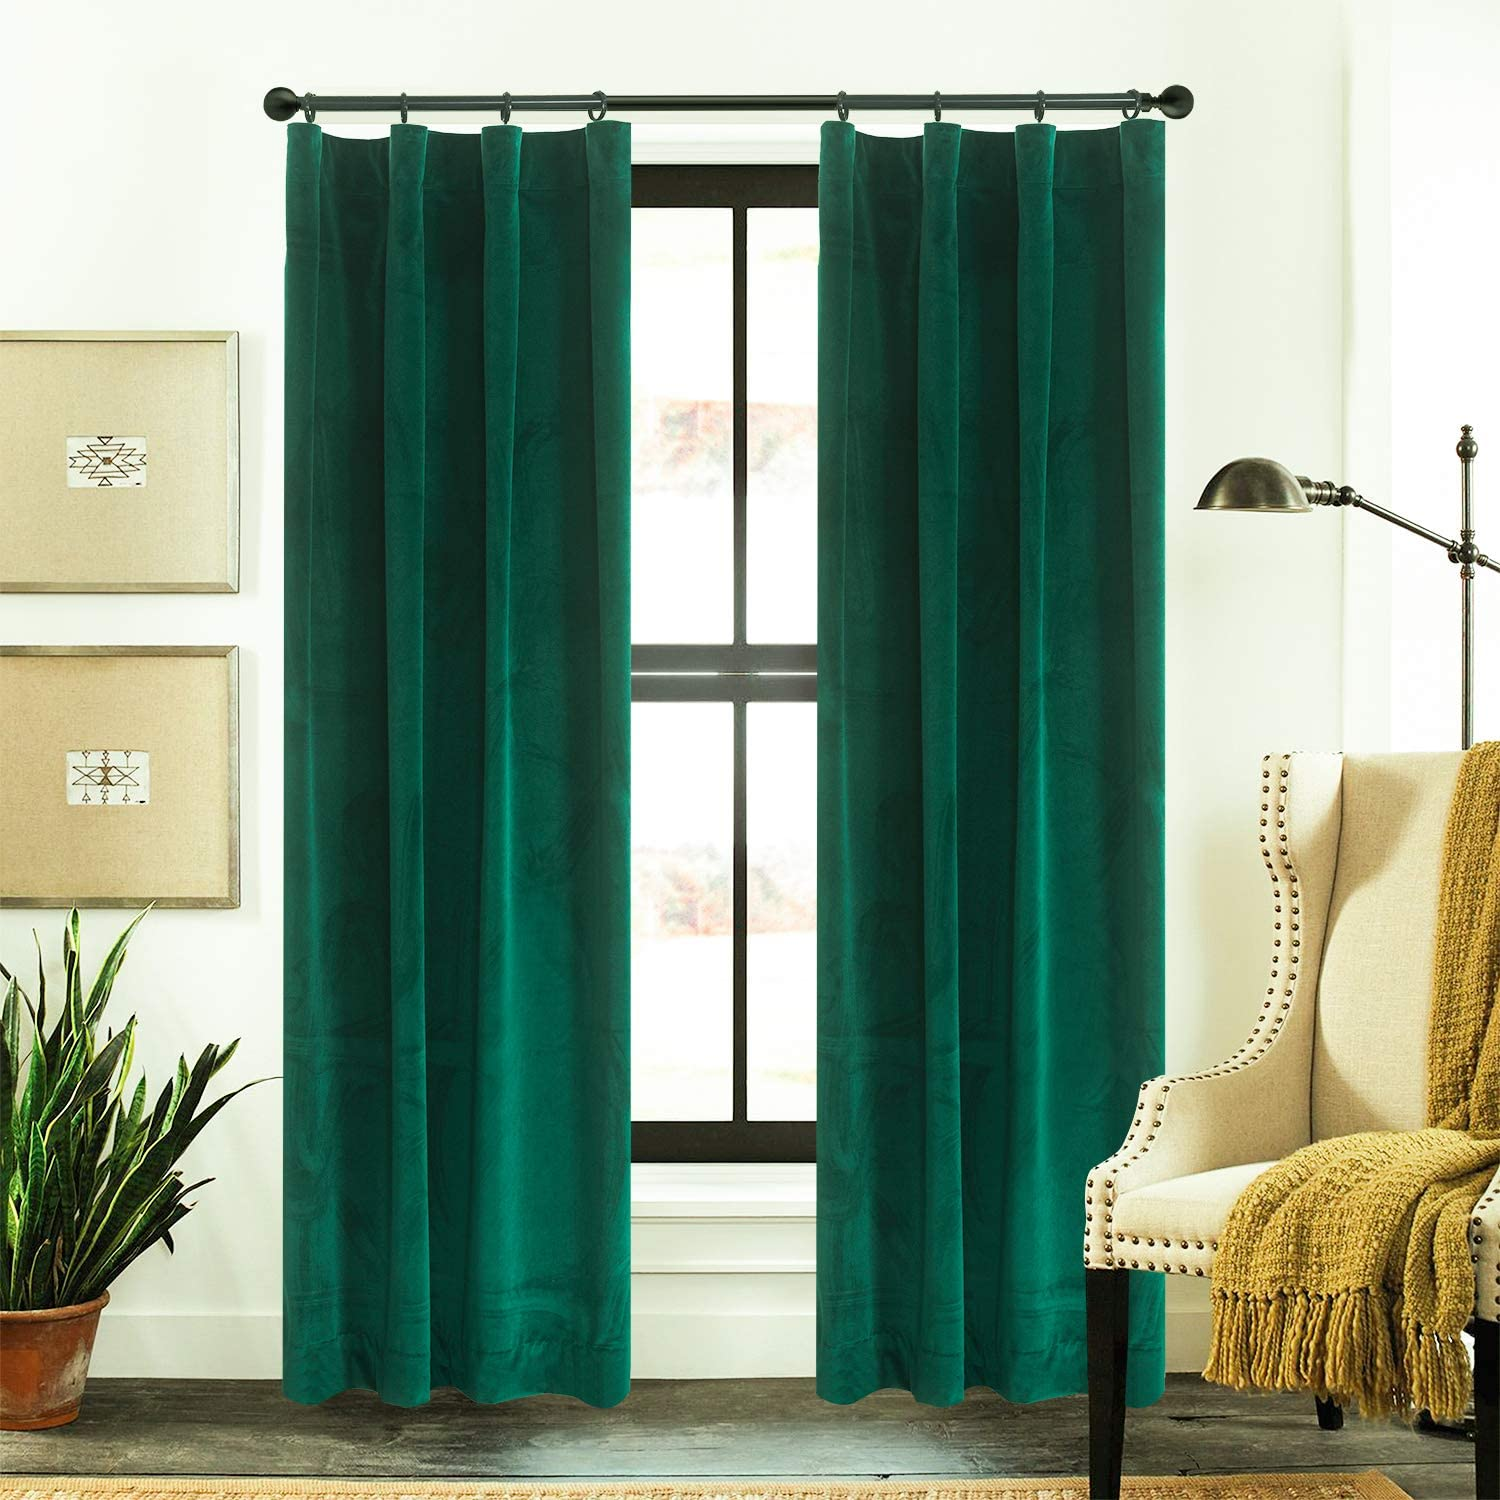 Roslynwood Velvet Curtains Dark Forest Green Green Rod Pocket Drapes Emerald Green 84 inch Thermal Insulated for Bedroom 2 Panels (W52'' x L84'', Emerald Green)